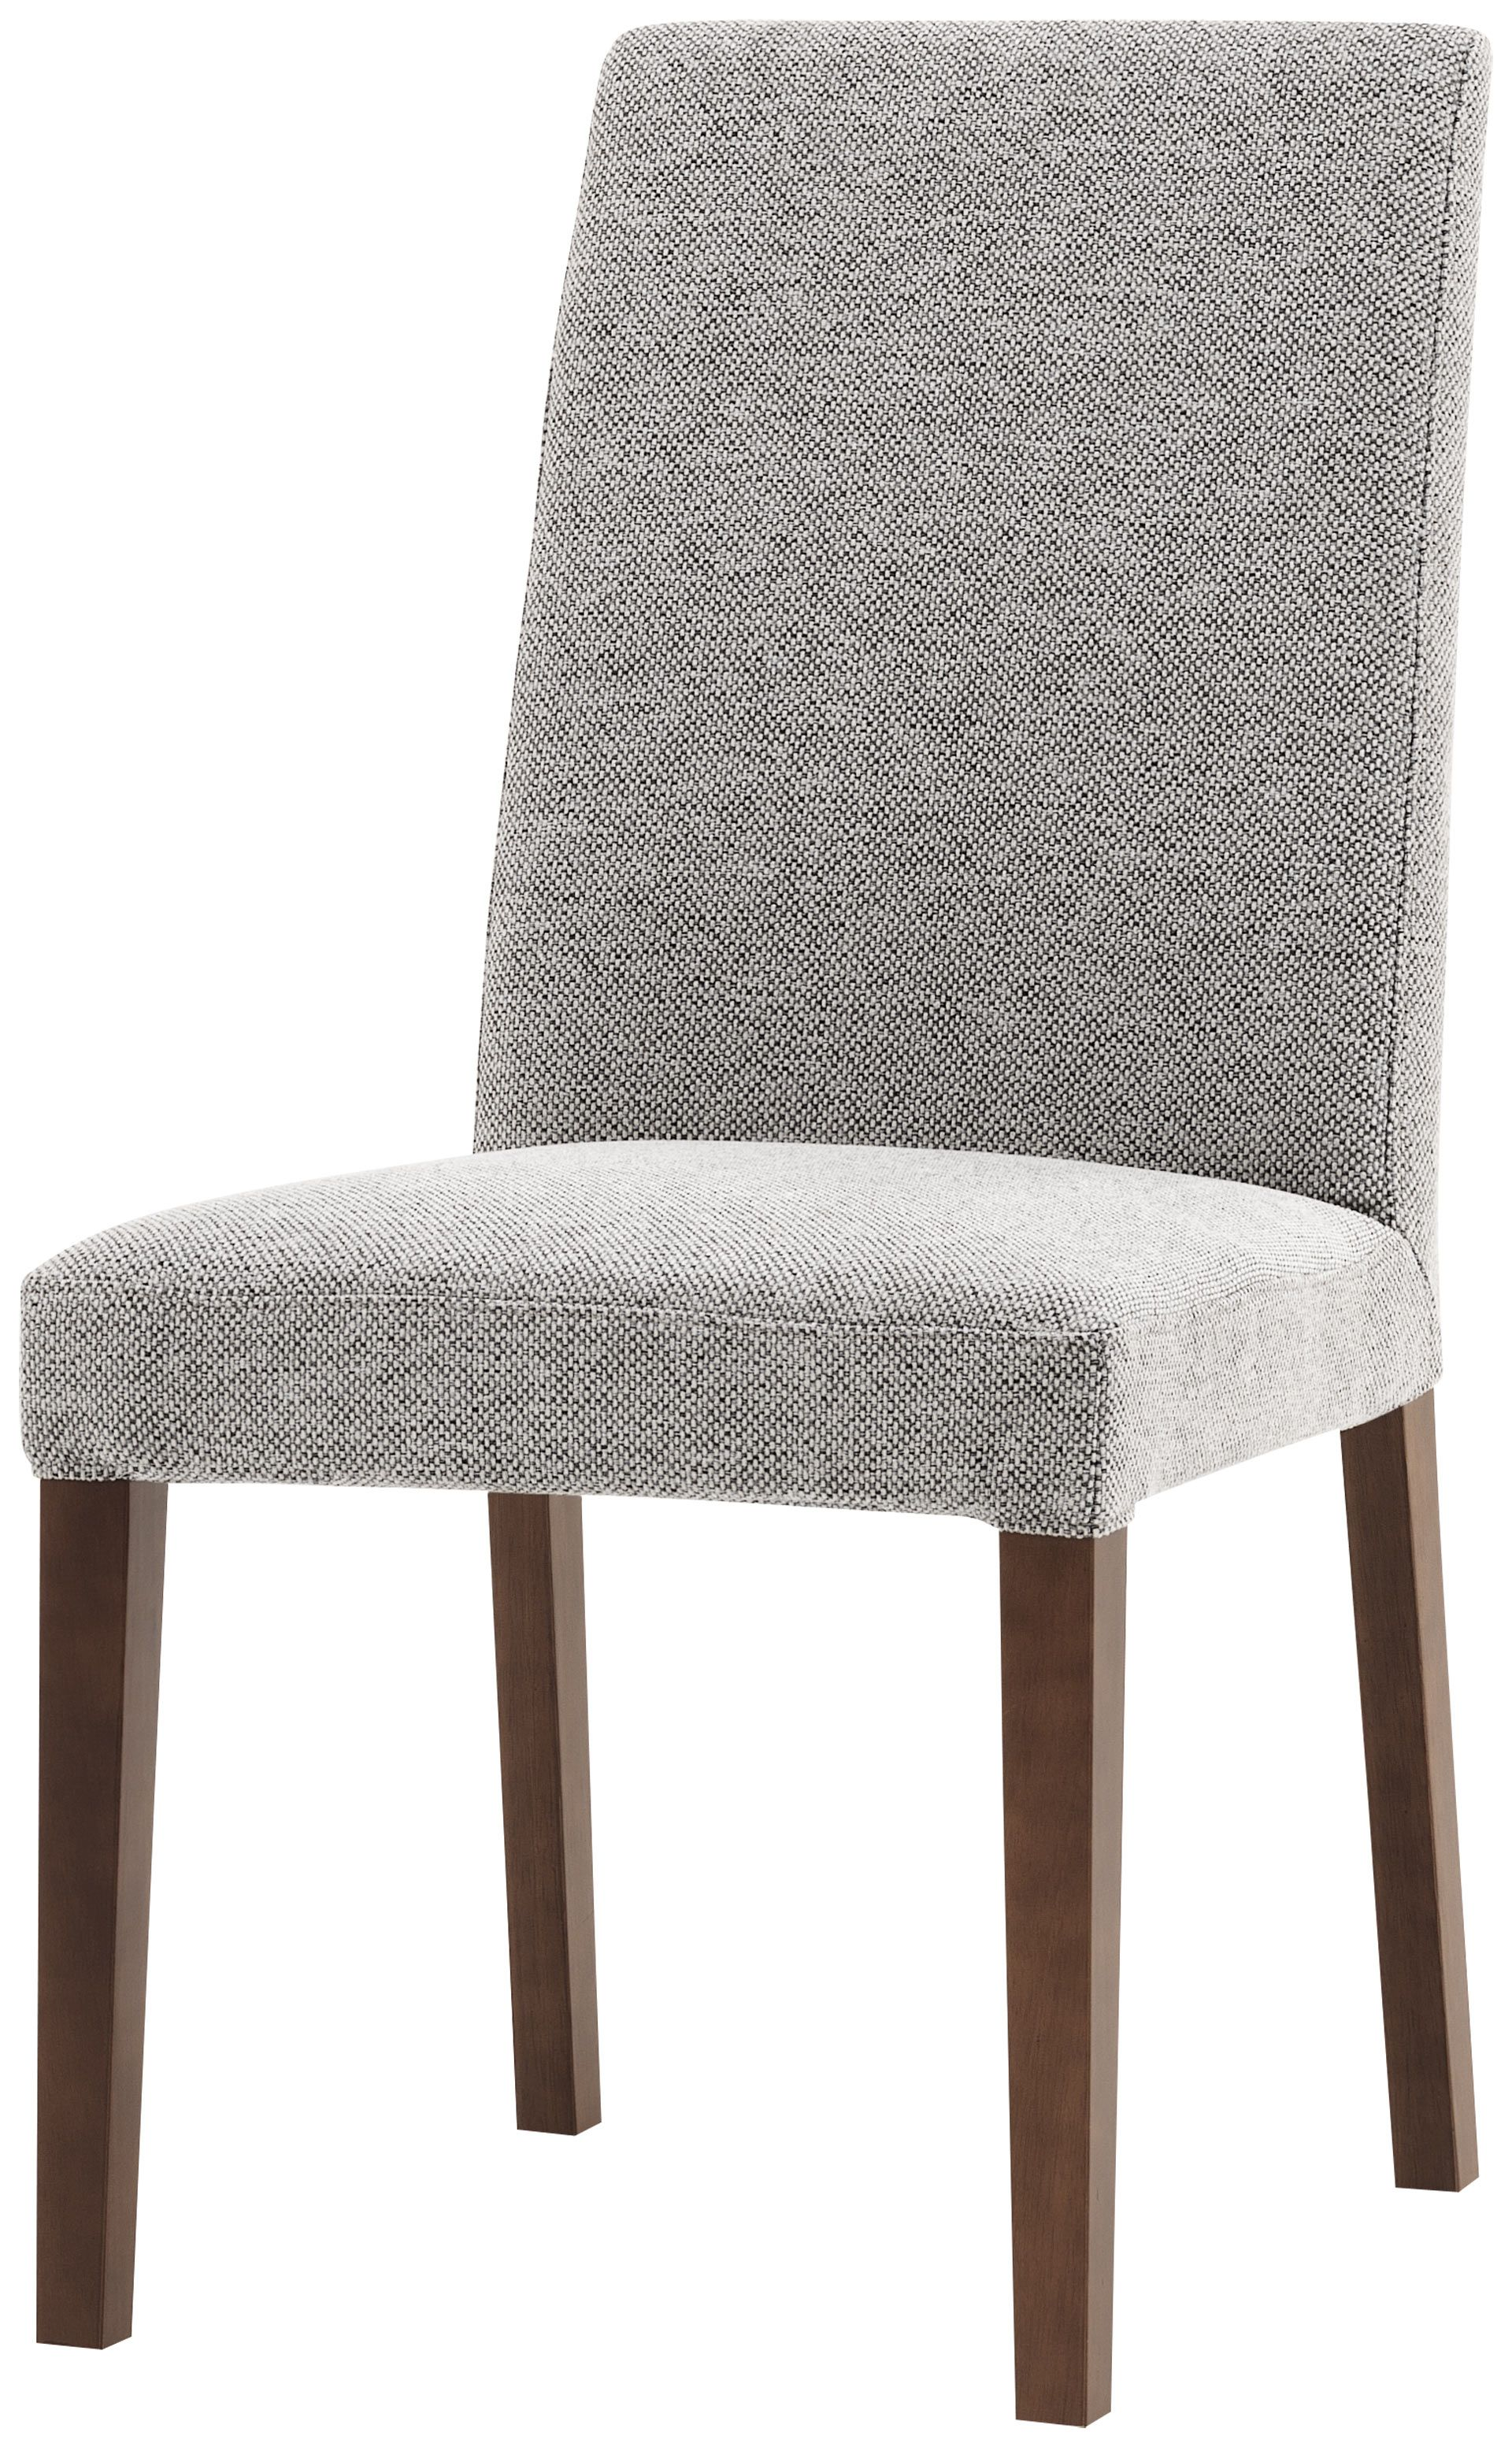 Black fabric dining chairs - New Genova Chair Available In All Fabrics And Leathers As Shown Light Gray Mojave Fabric Walnut Veneer Chairs Also Available In Black Oak